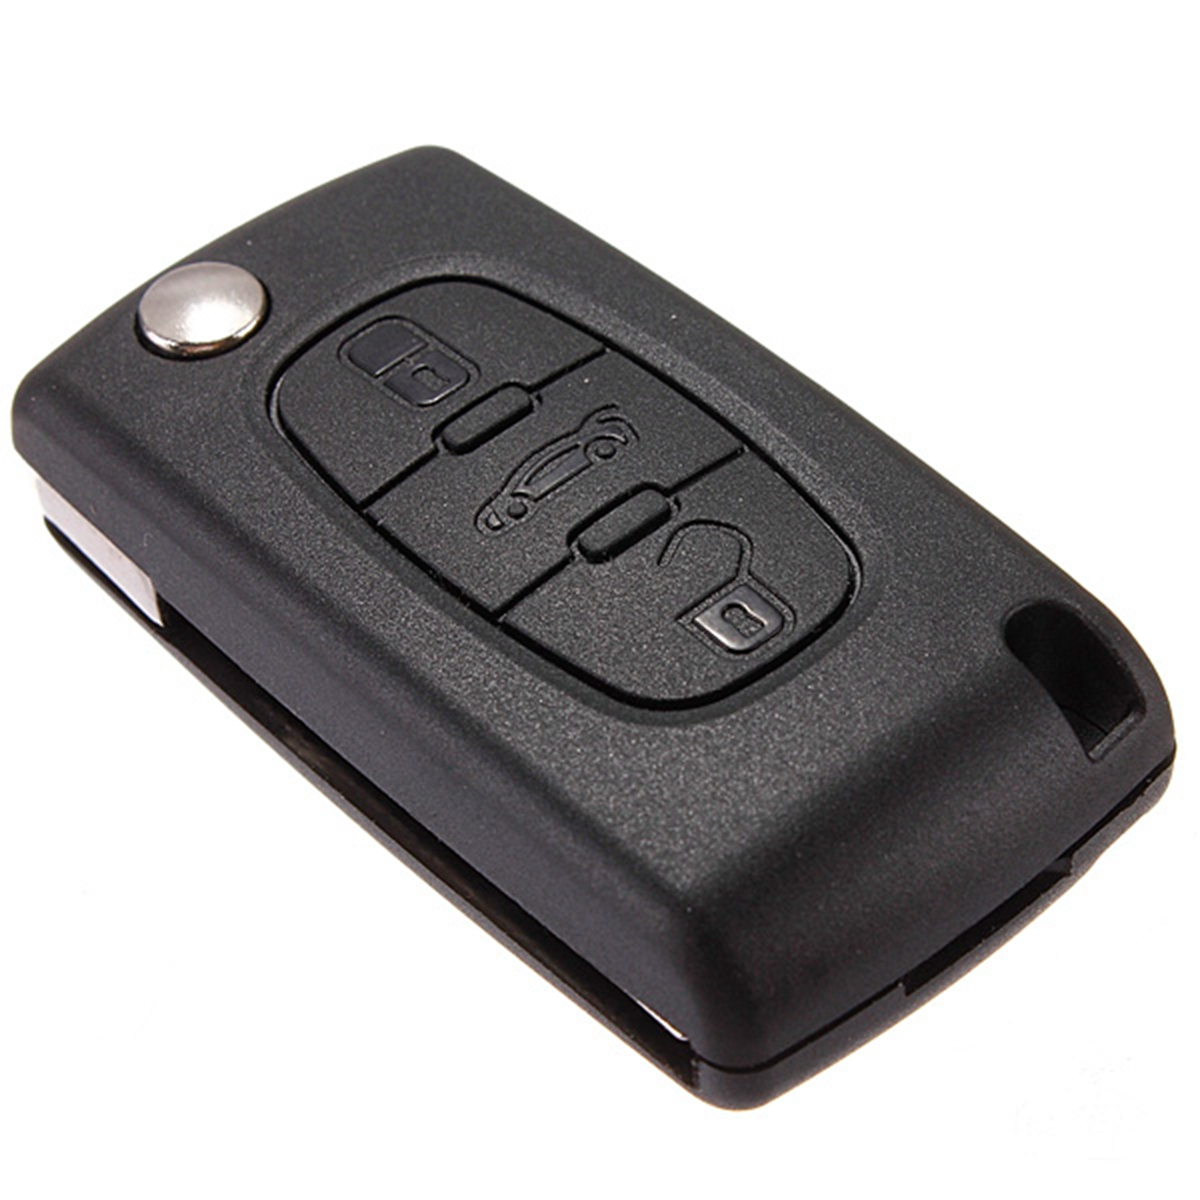 3 button remote key fob shell uncut blade for citroen c4 grand picasso ce0523. Black Bedroom Furniture Sets. Home Design Ideas